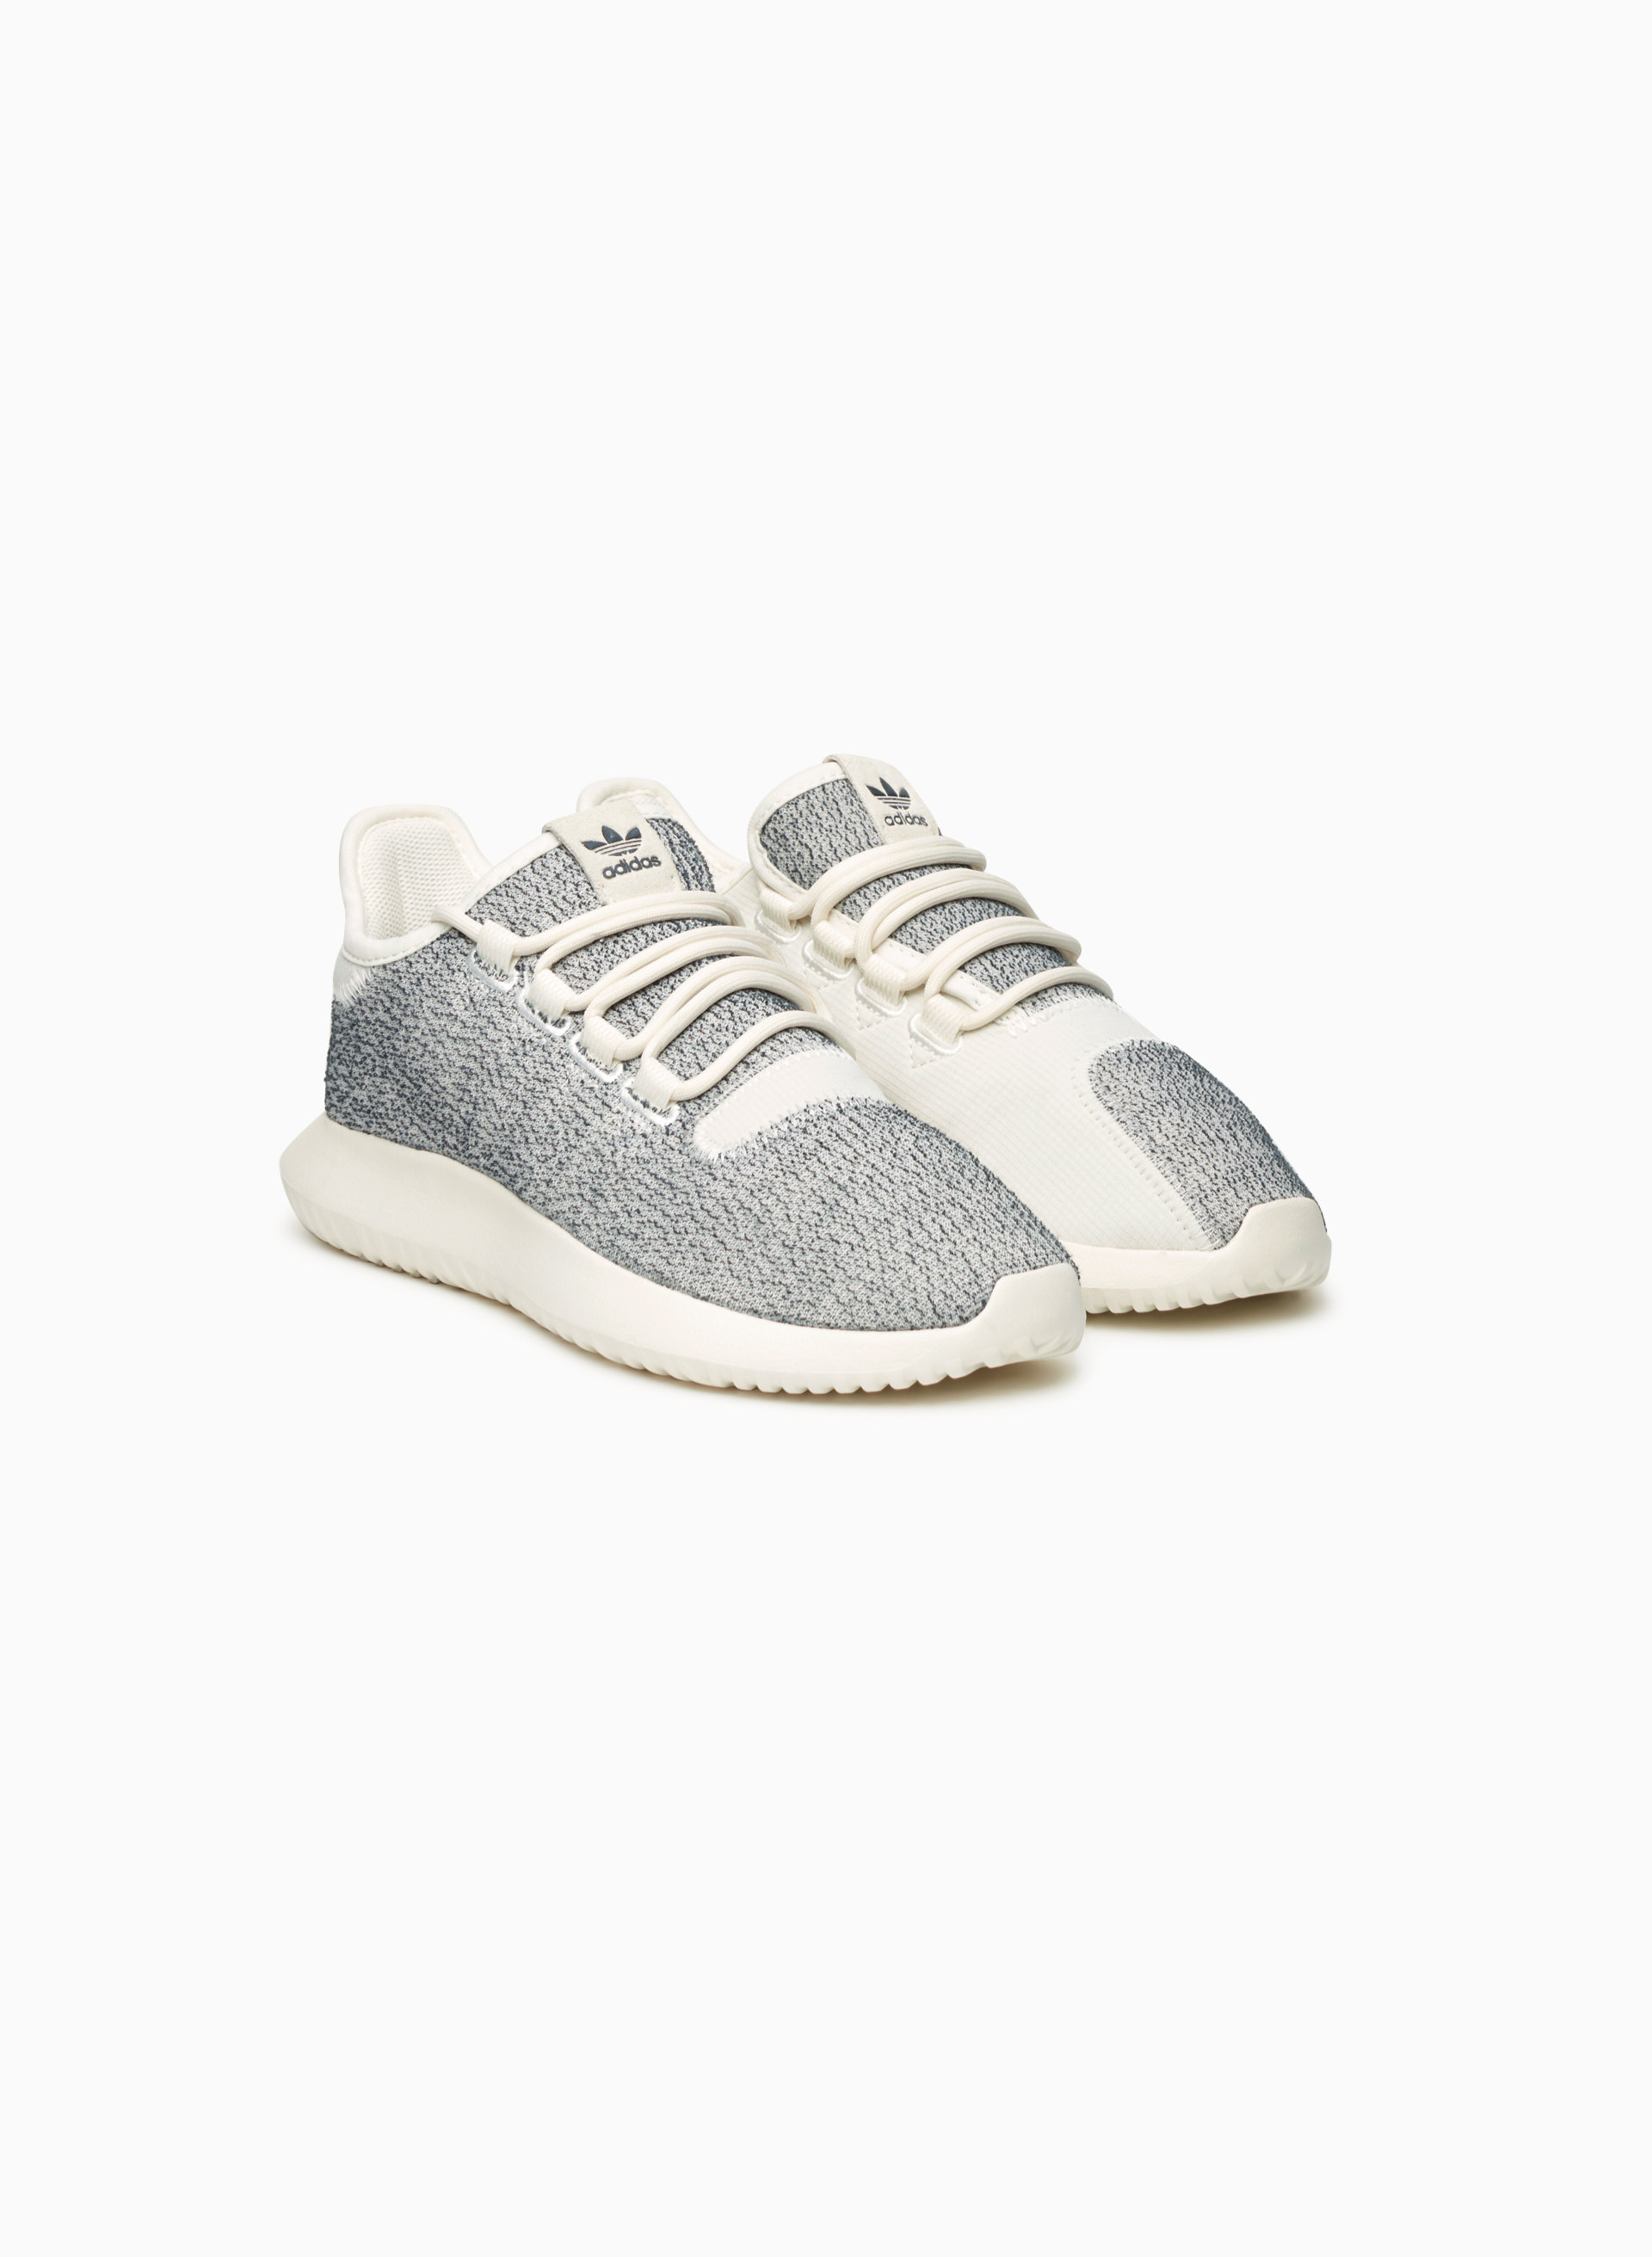 Hello Winter! 46% Off Adidas Originals Tubular Shadow Sneakers In